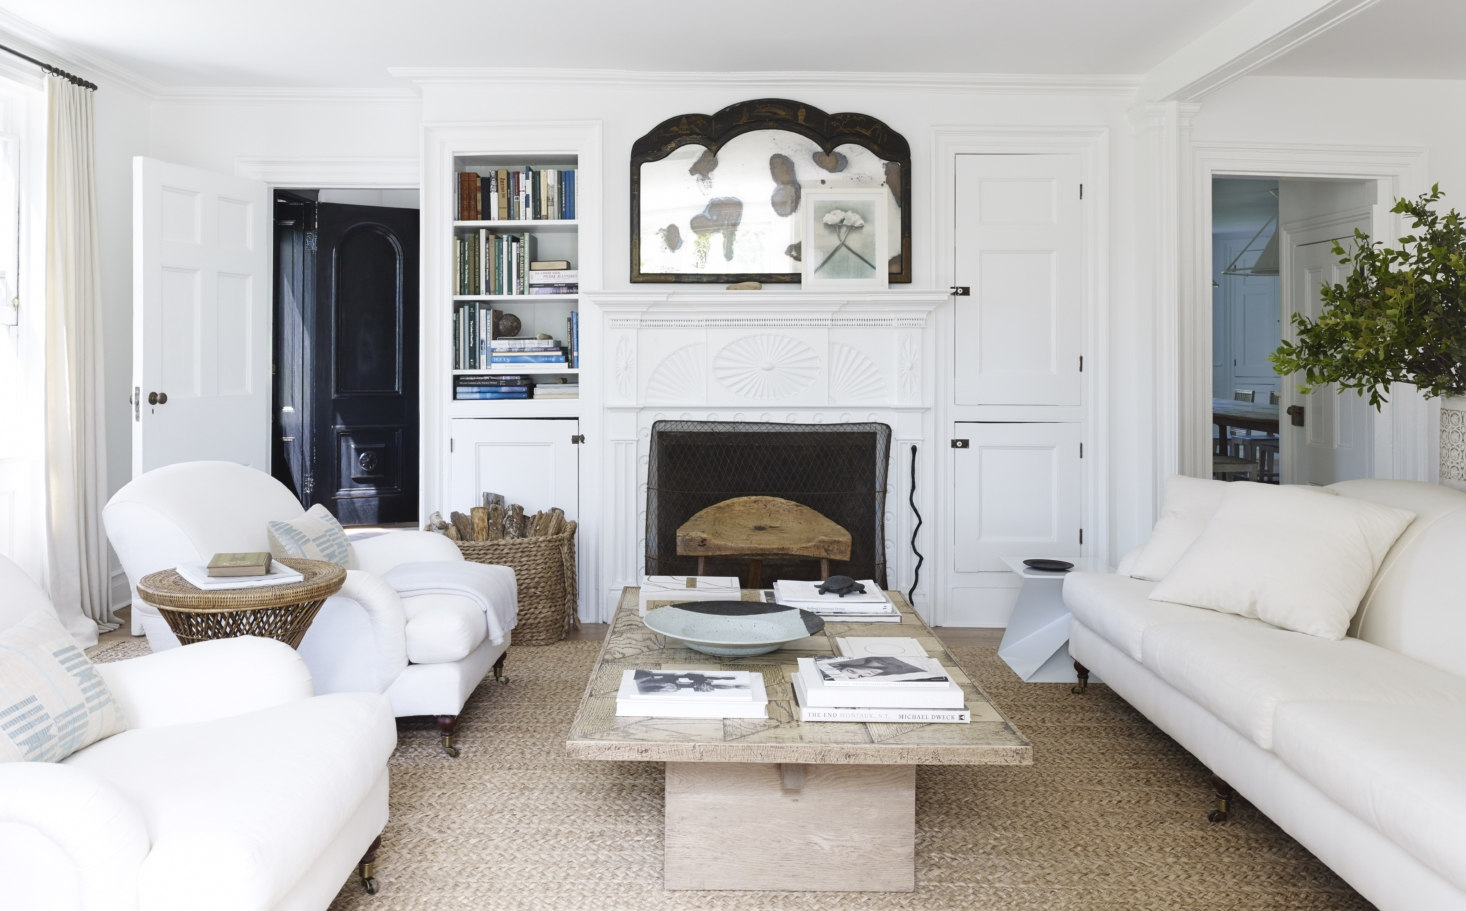 A house in the Hamptons, The beauty of simplicity